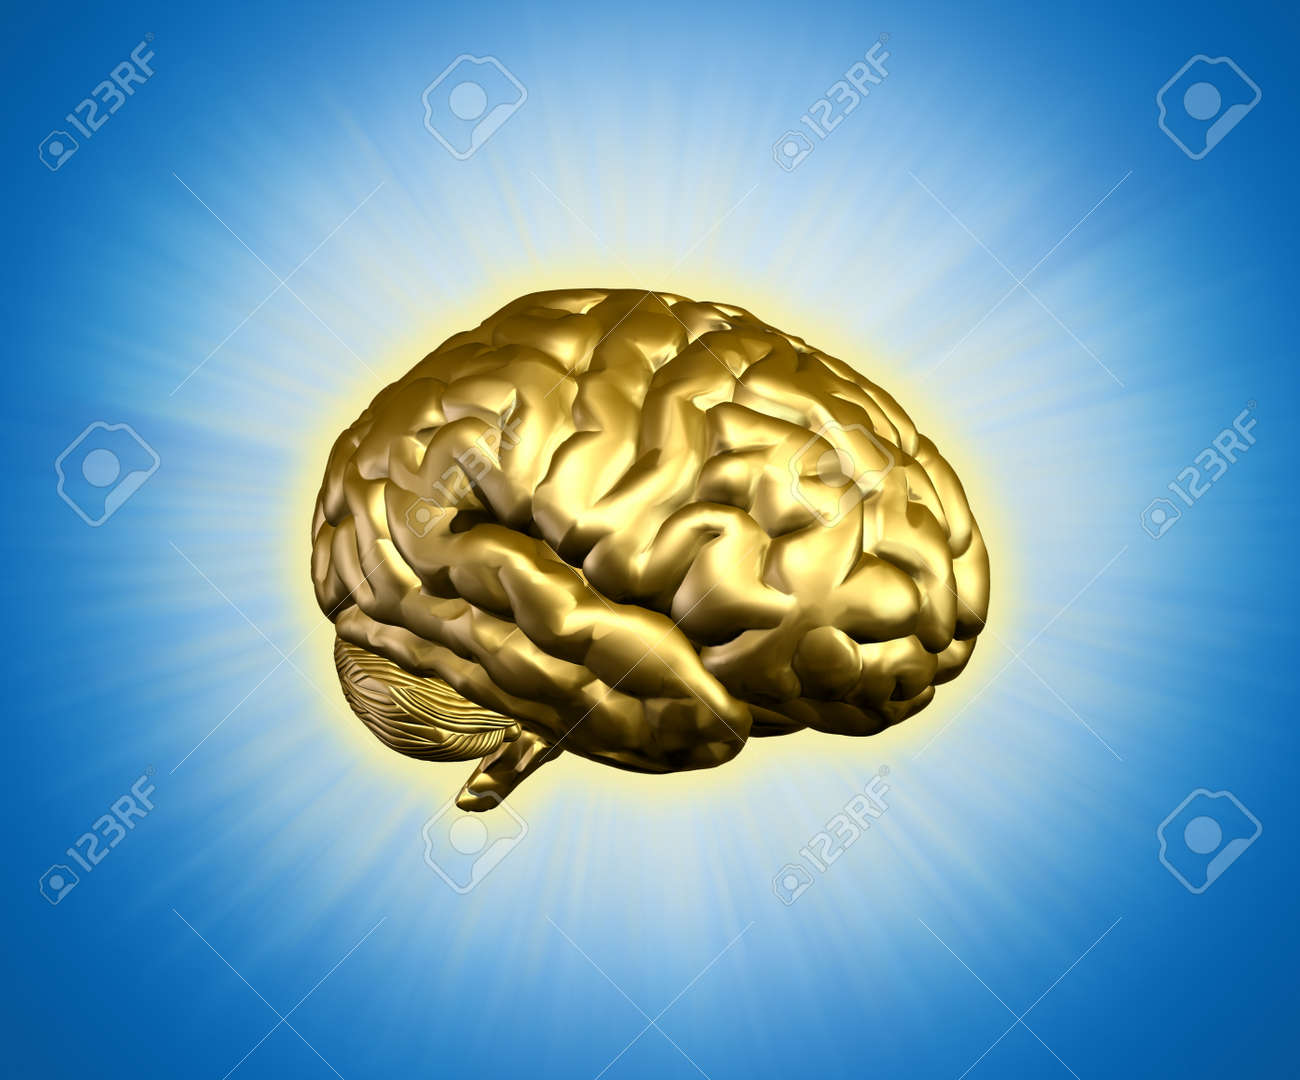 Golden radiant brain - combines 3D render with digital painting. Stock Photo - 7972902